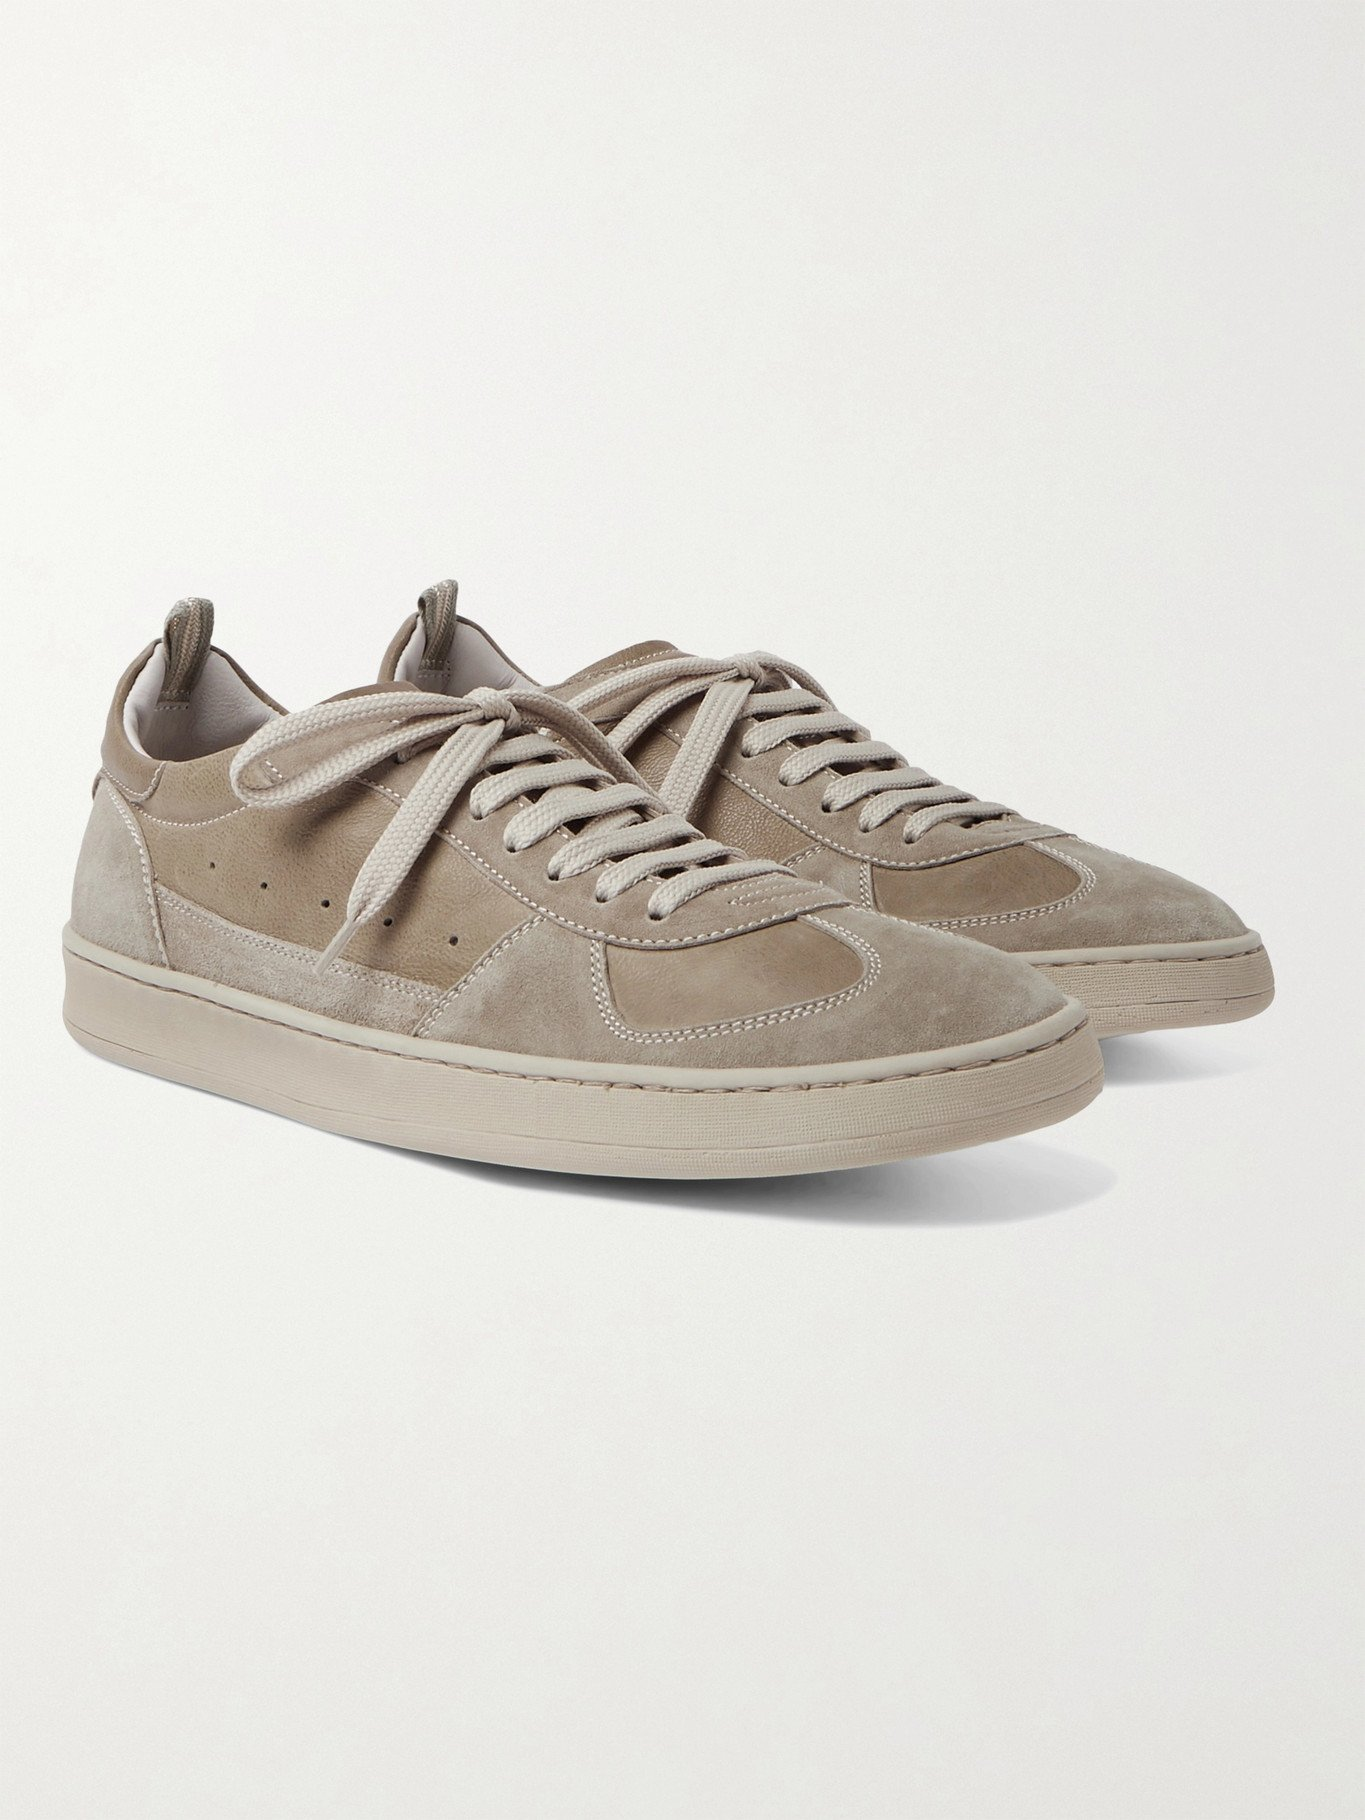 Photo: OFFICINE CREATIVE - Kadette Suede and Leather Sneakers - Neutrals